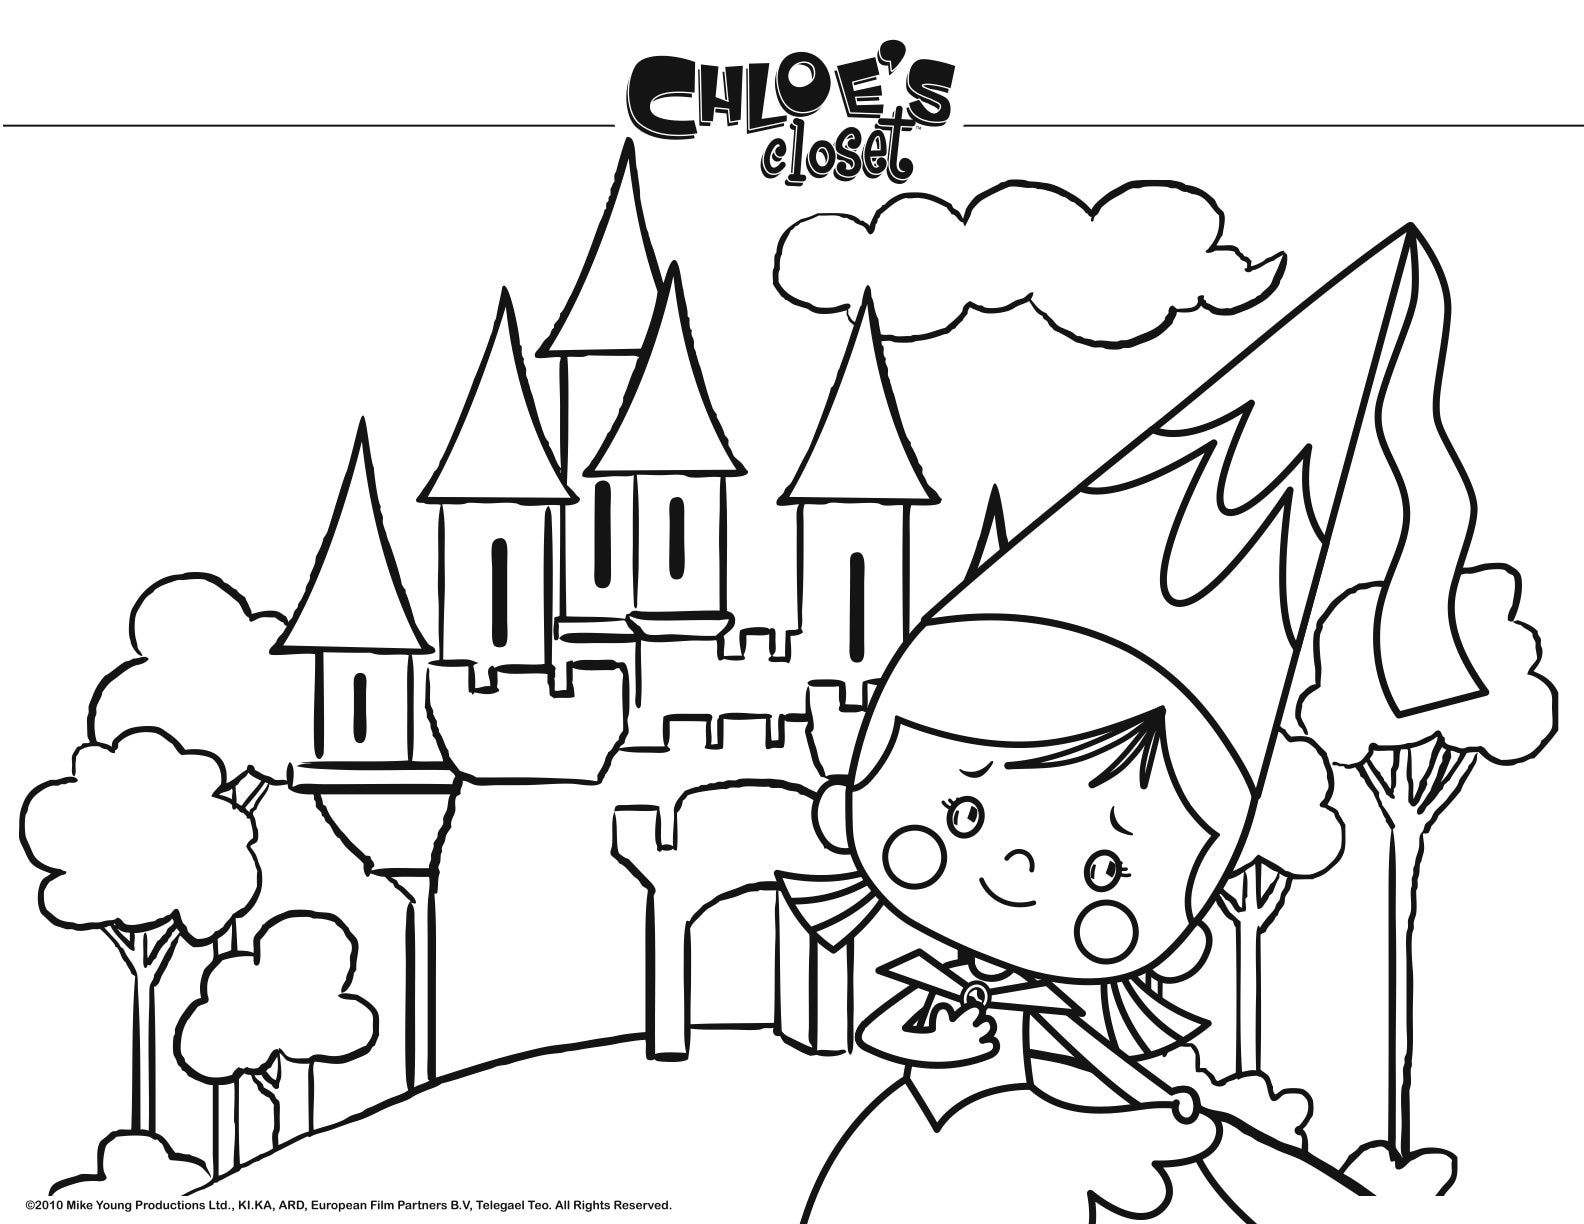 Coloring Pages Chloes Closet